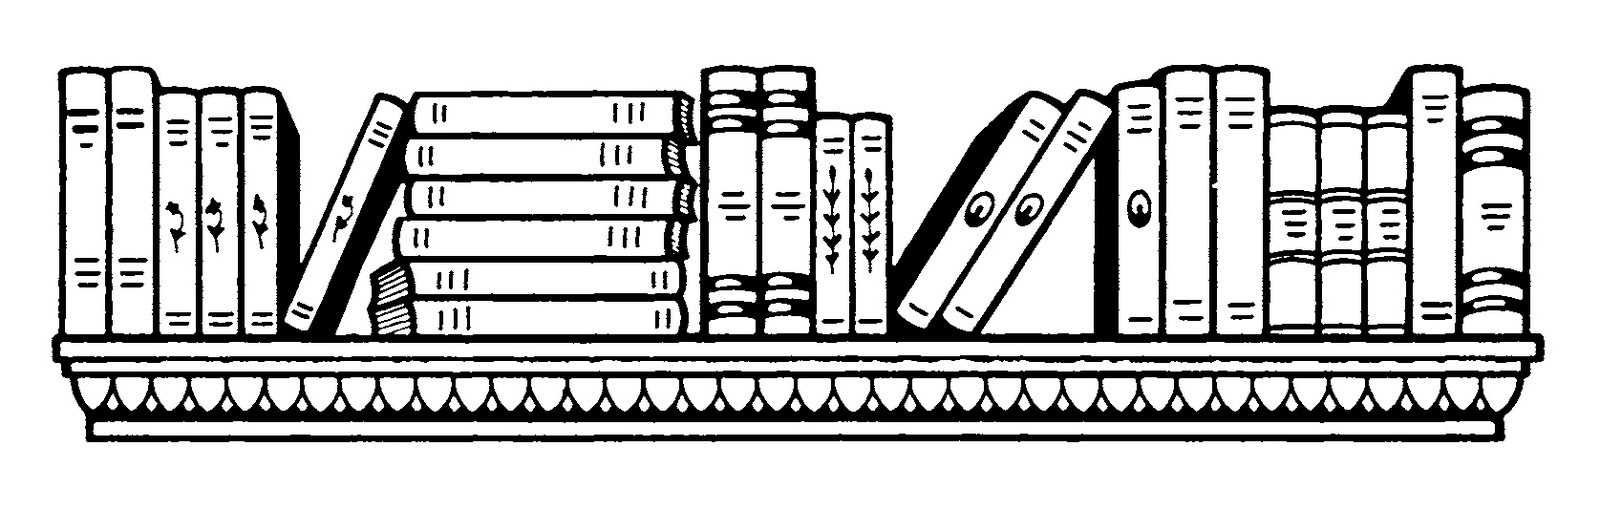 hight resolution of book black and white school books clipart black and white clip art library